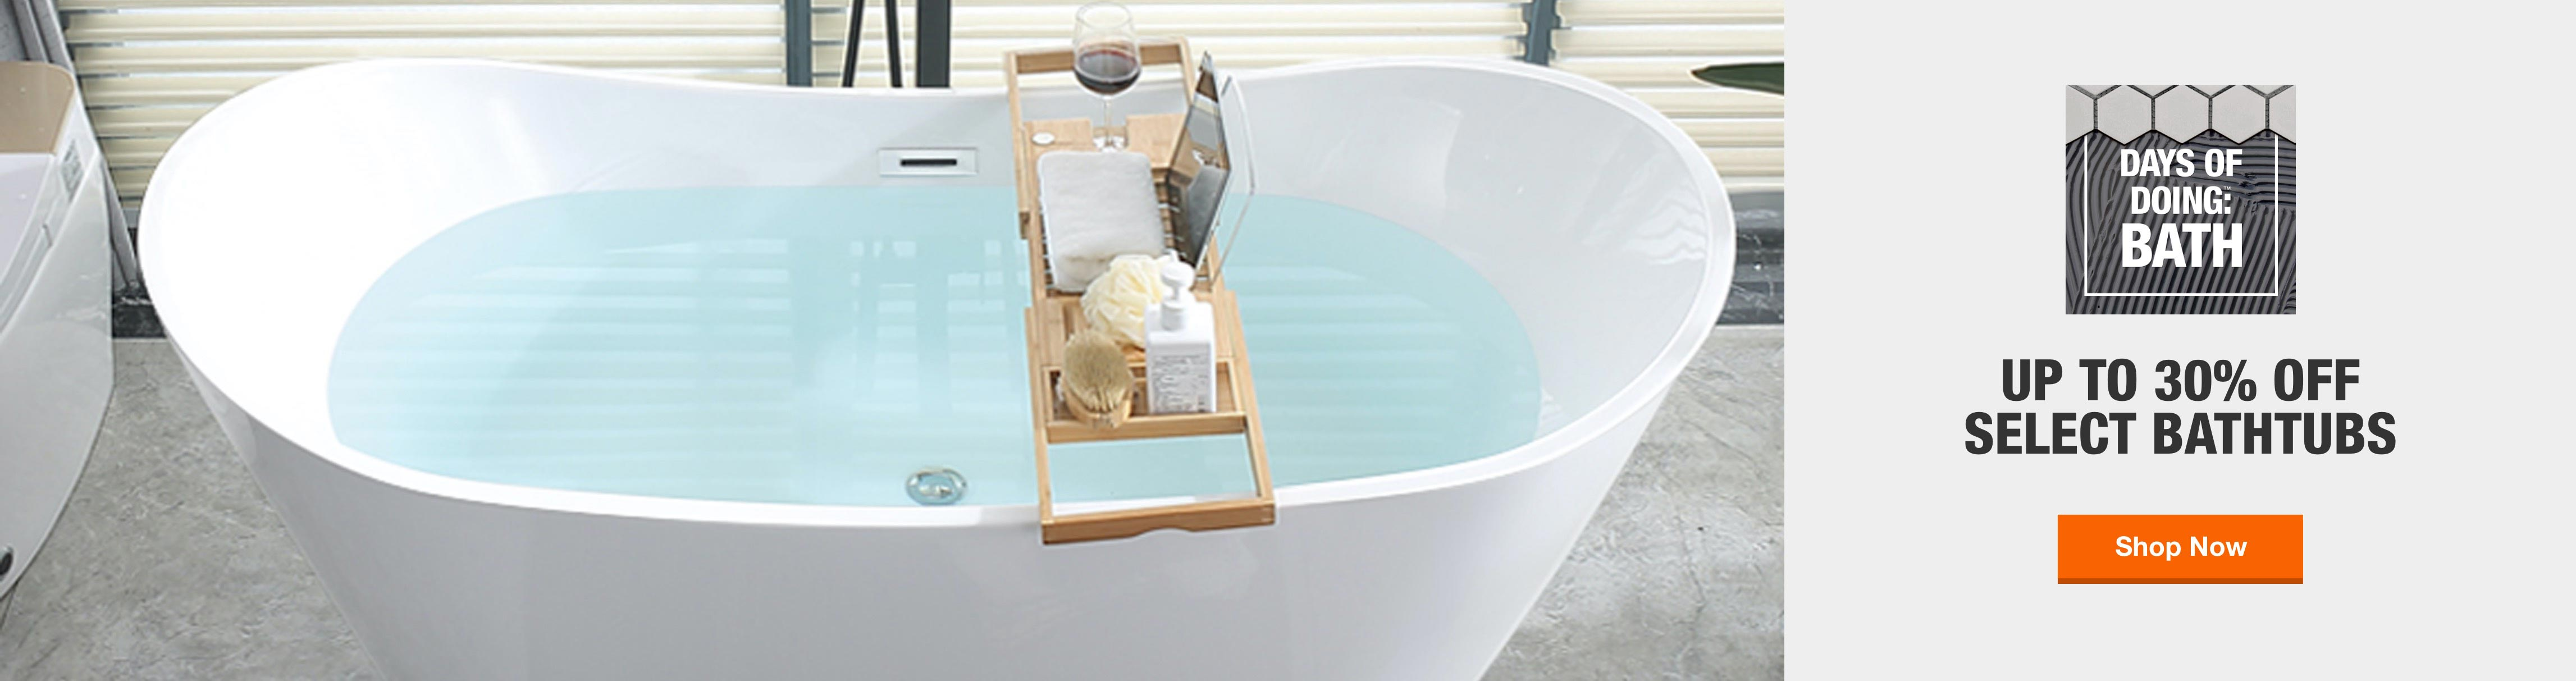 Up to 30% Off Select Bathtubs. Summer Bath Event ends September 27th, 2020